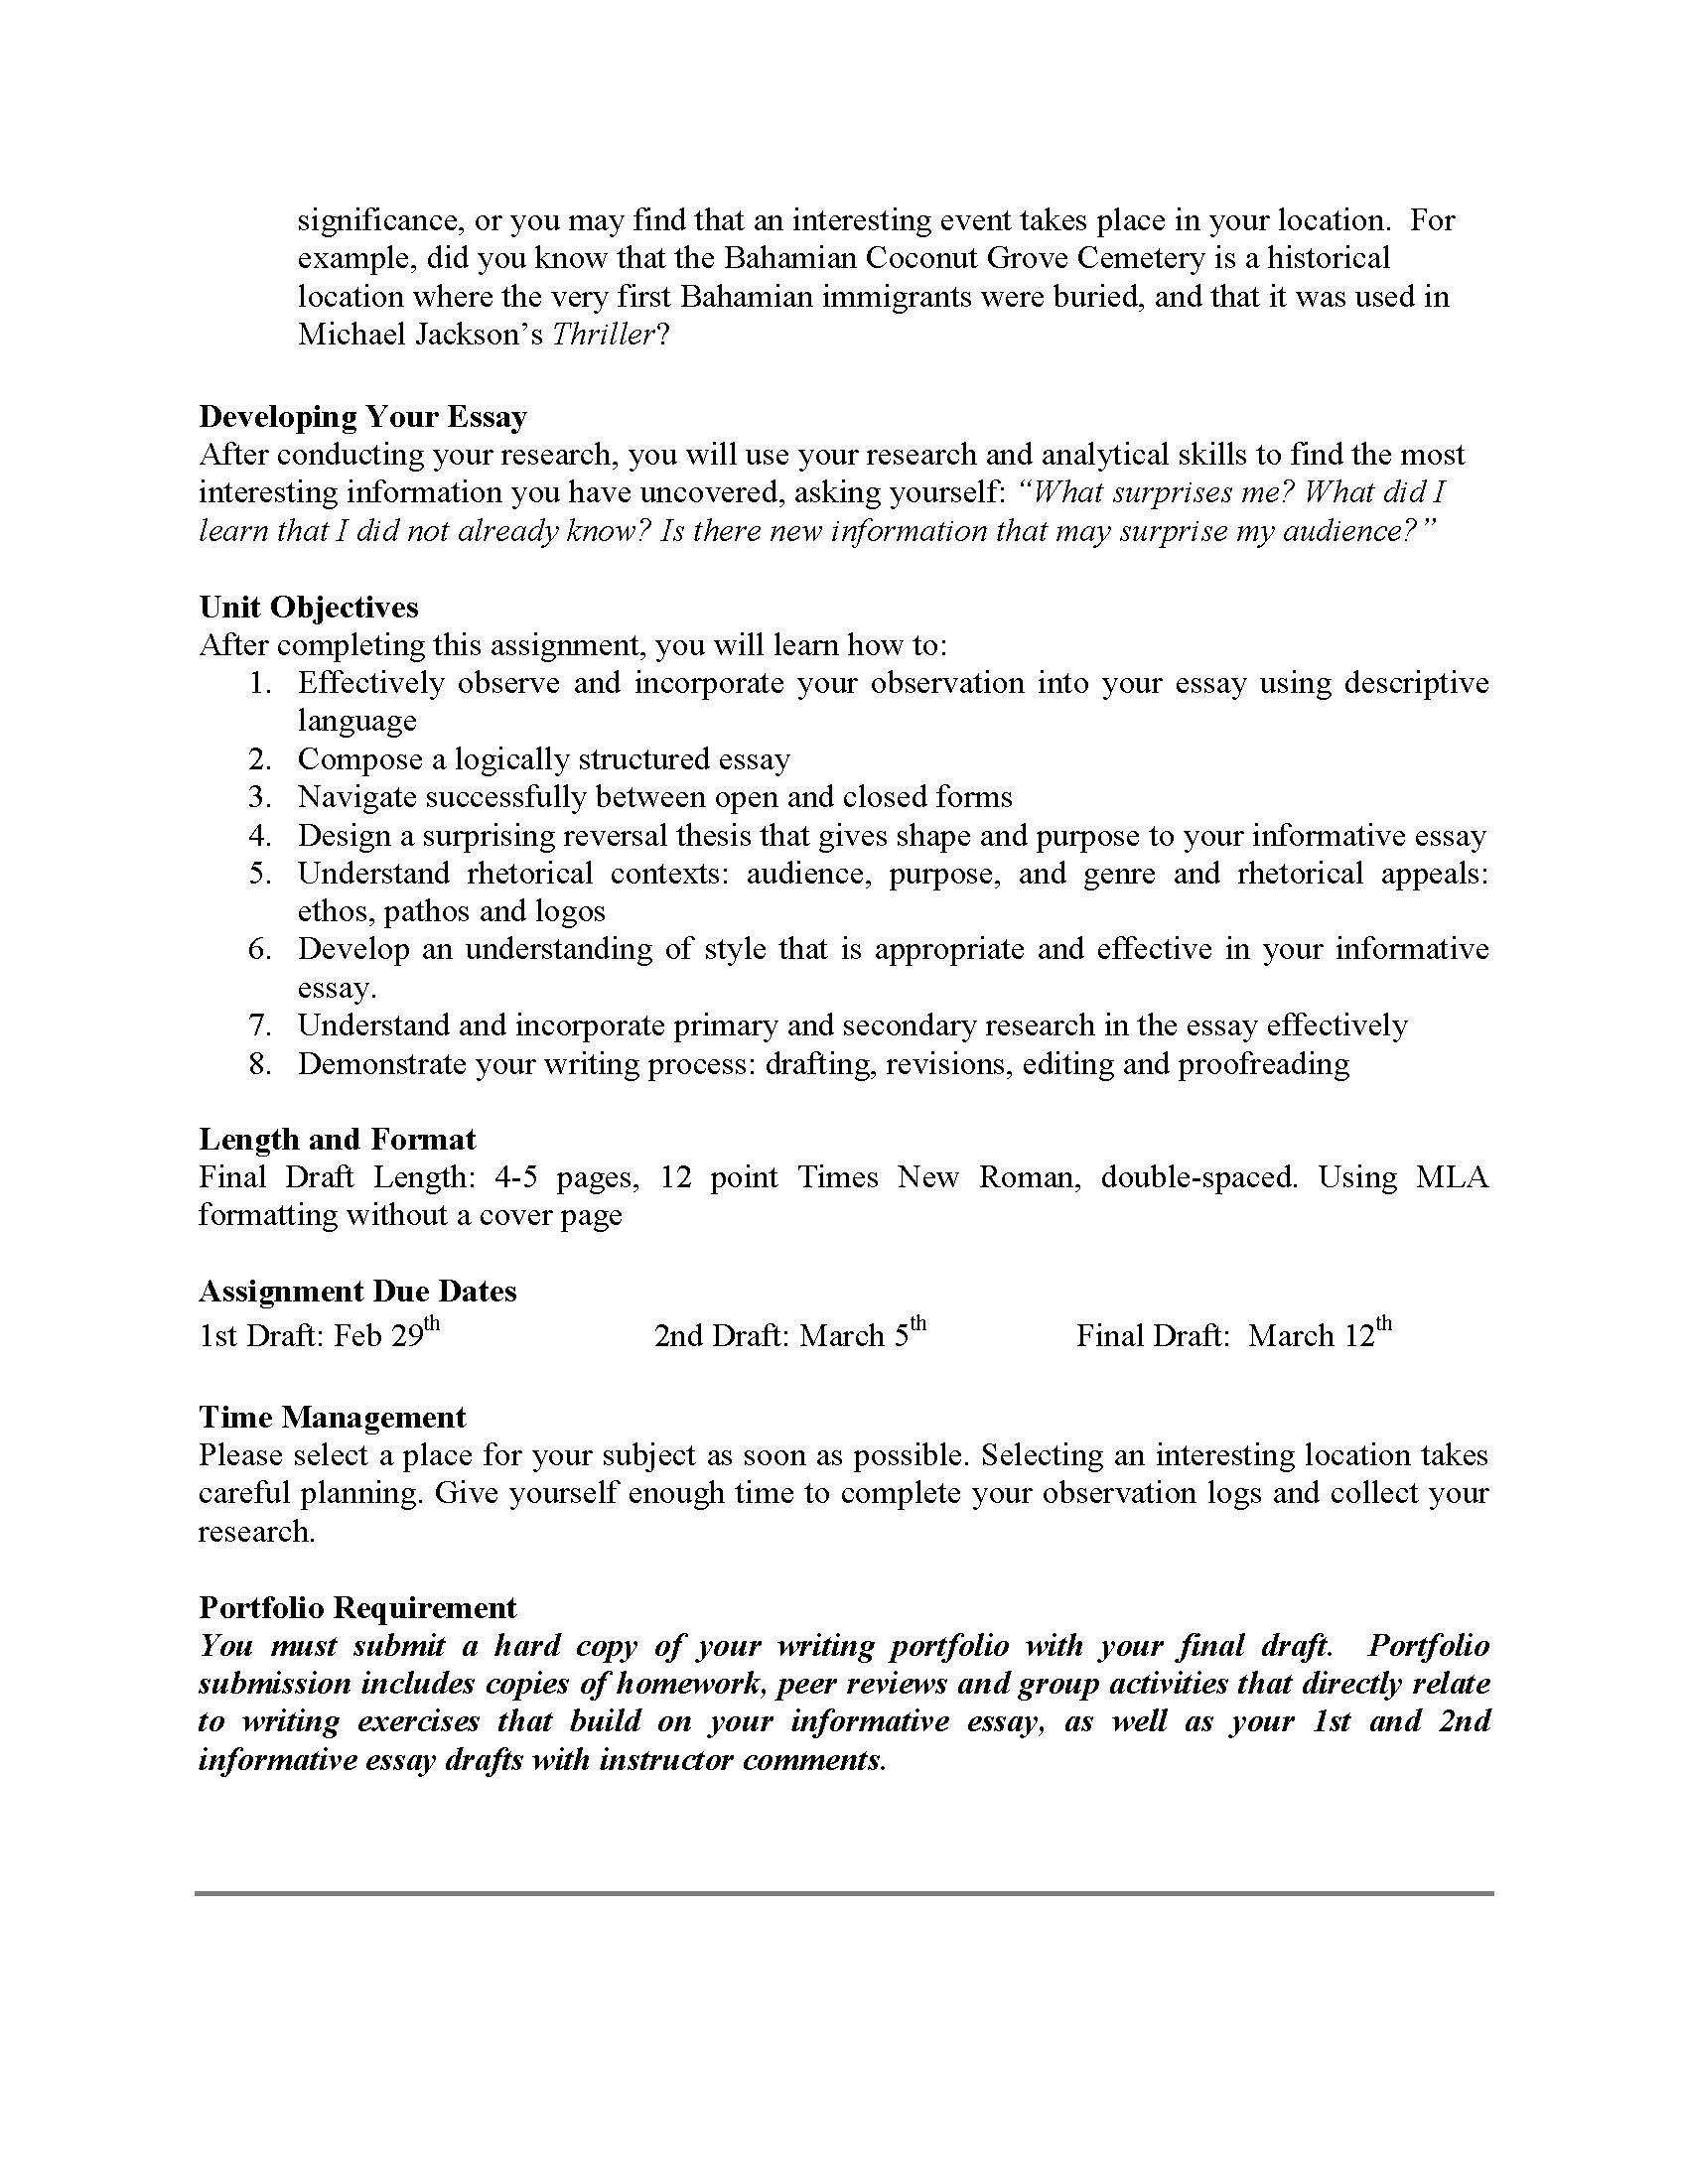 014 Informative Essay Unit Assignment Page 2 Dreaded Graphic Organizer Prompts Middle School 3rd Grade Full